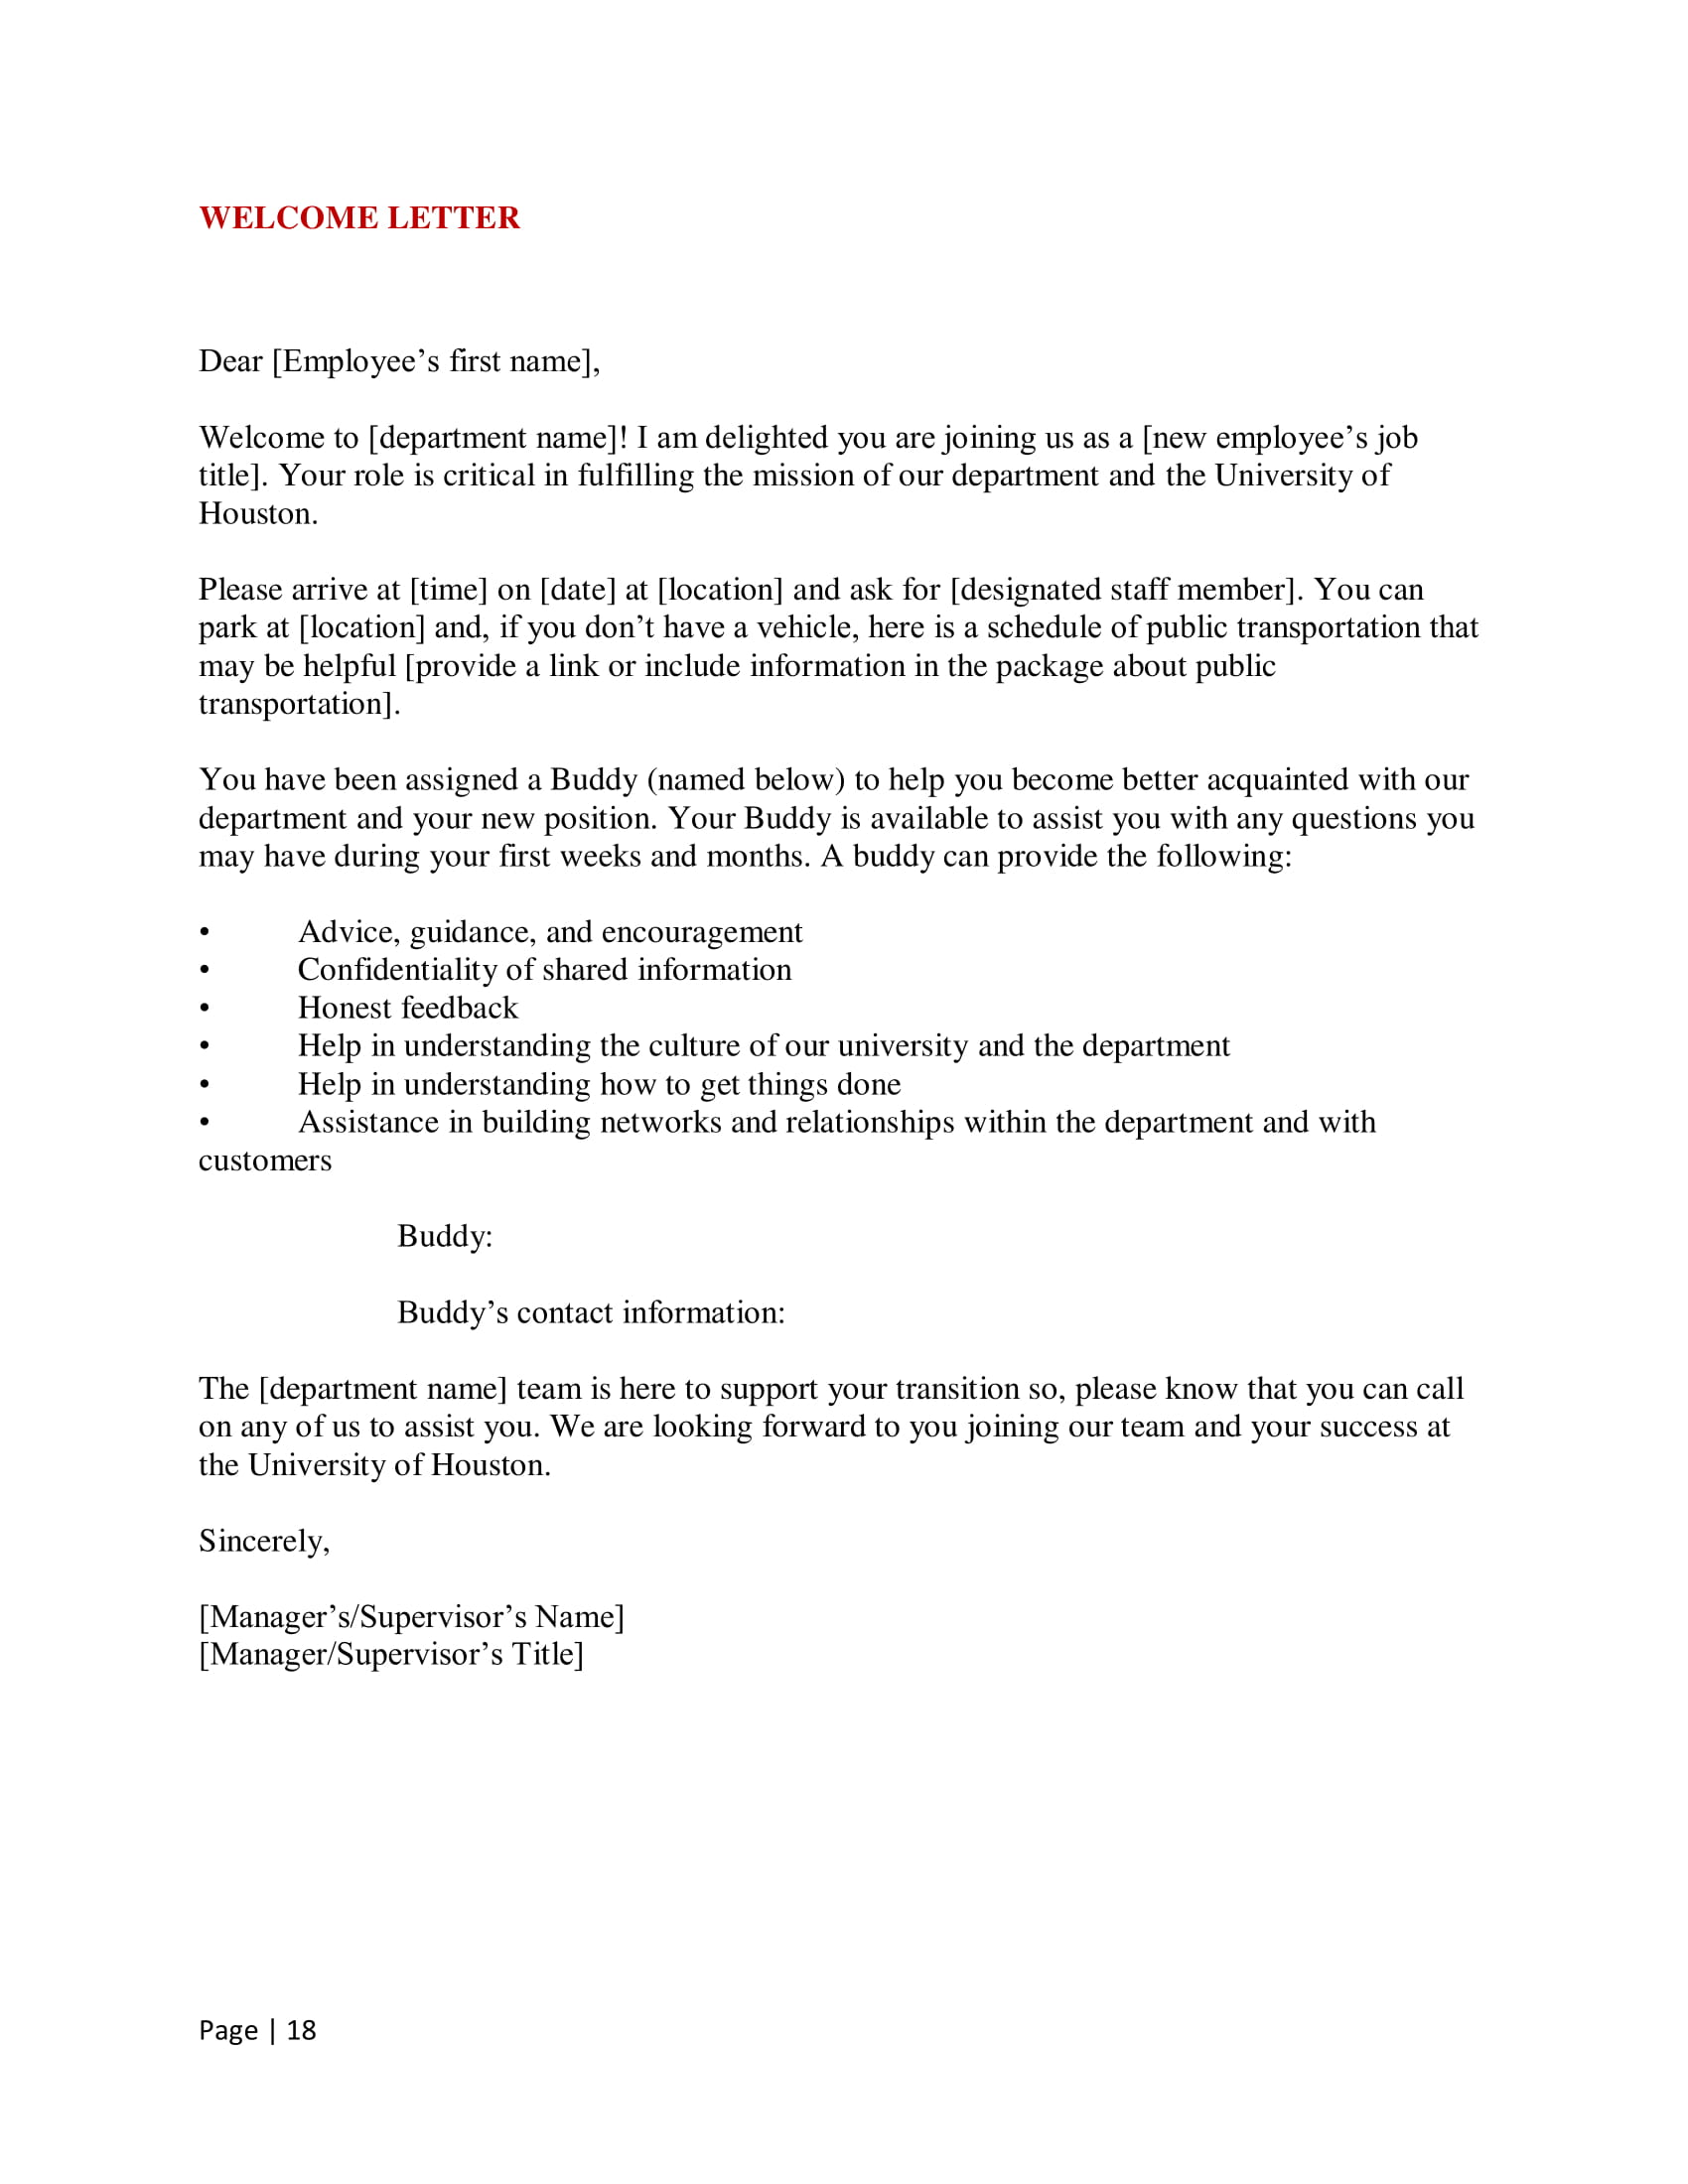 Welcome Letter to New Hire Example. uh onboarding manual 19